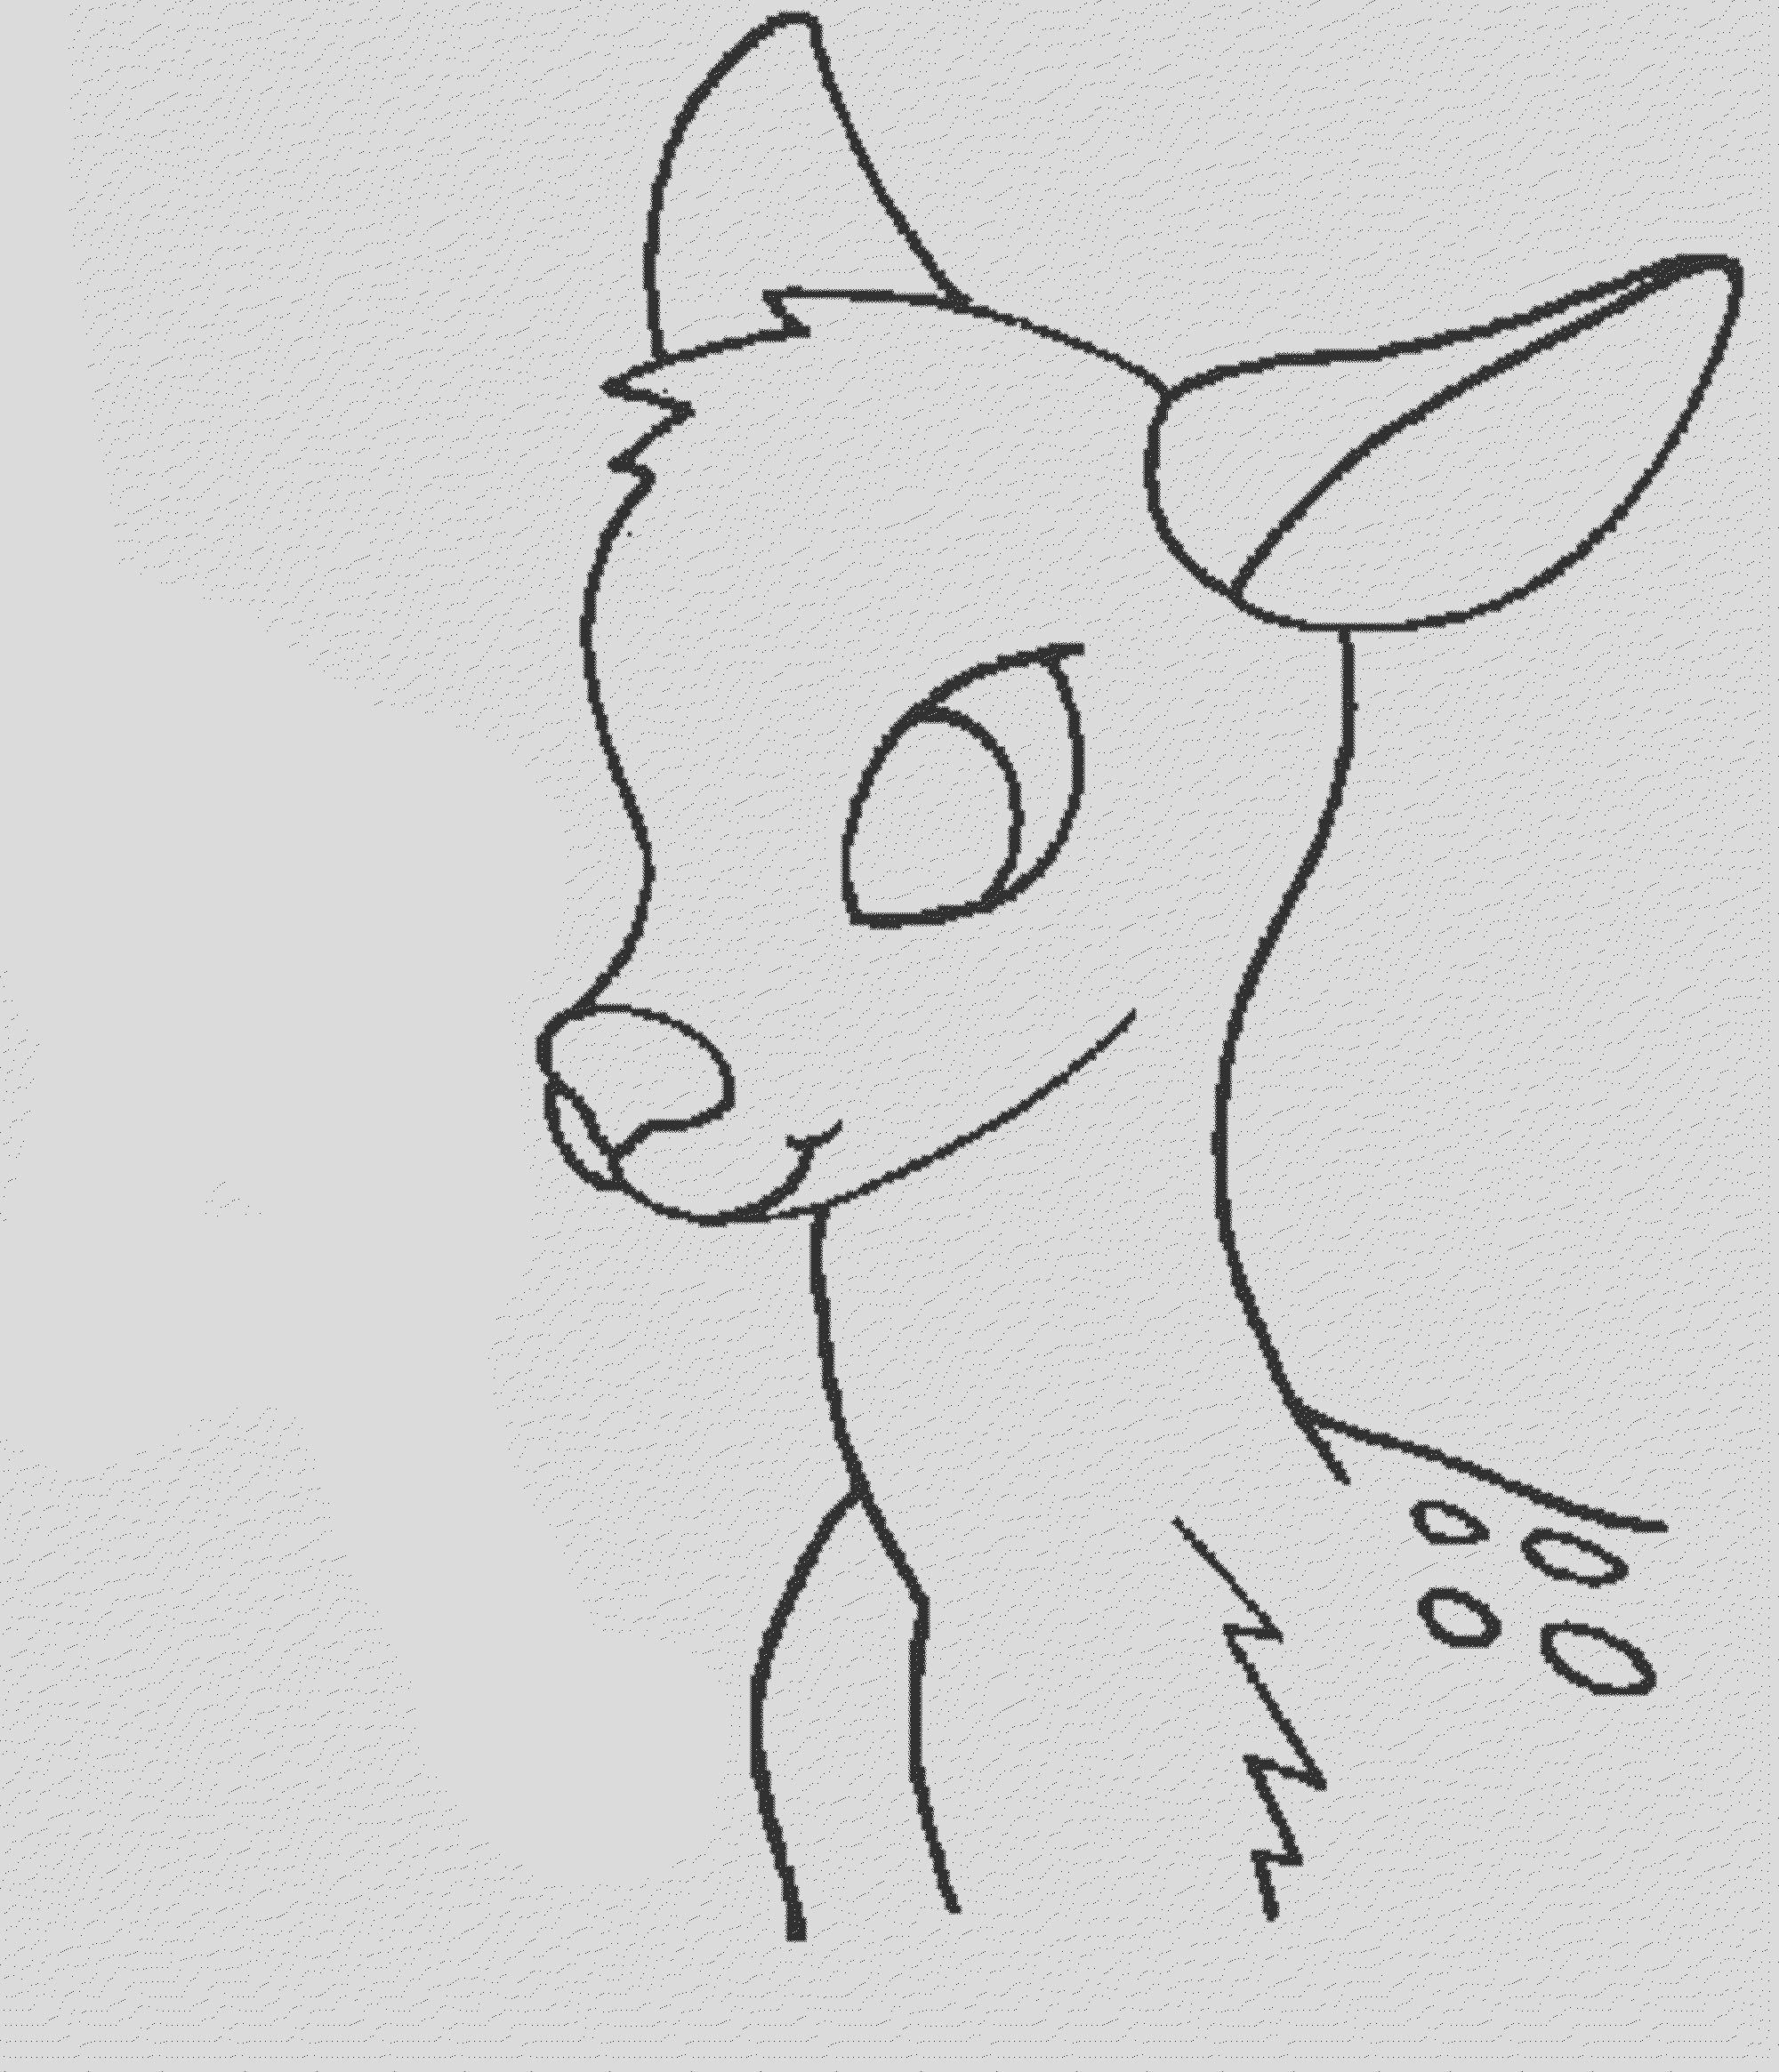 deer coloring pages totally enjoyable leisure time activity